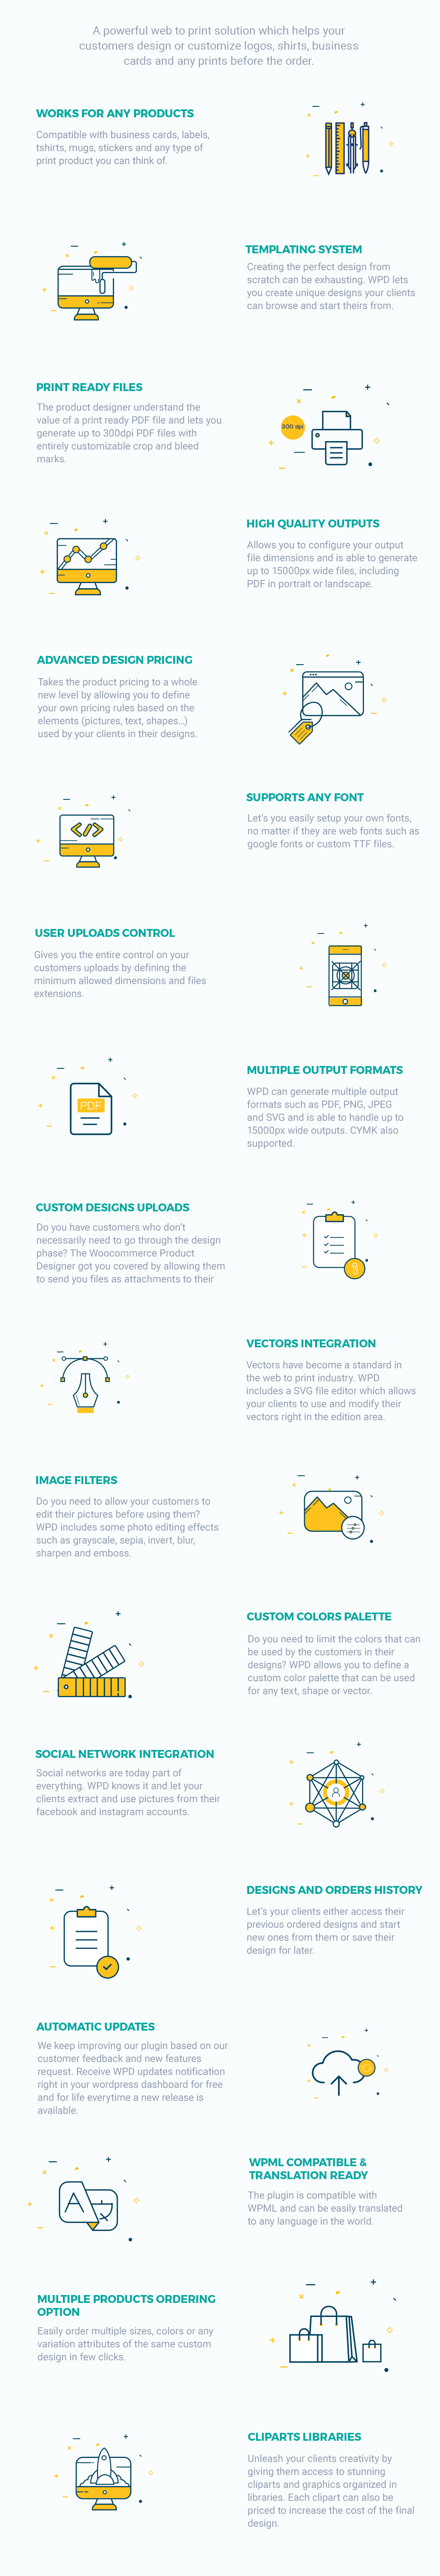 Woocommerce Products Designer - Online Product Customizer for Shirts, Cards, Lettering & Decals - 2  Download Woocommerce Products Designer – Online Product Customizer for Shirts, Cards, Lettering & Decals nulled wpd presentation v5